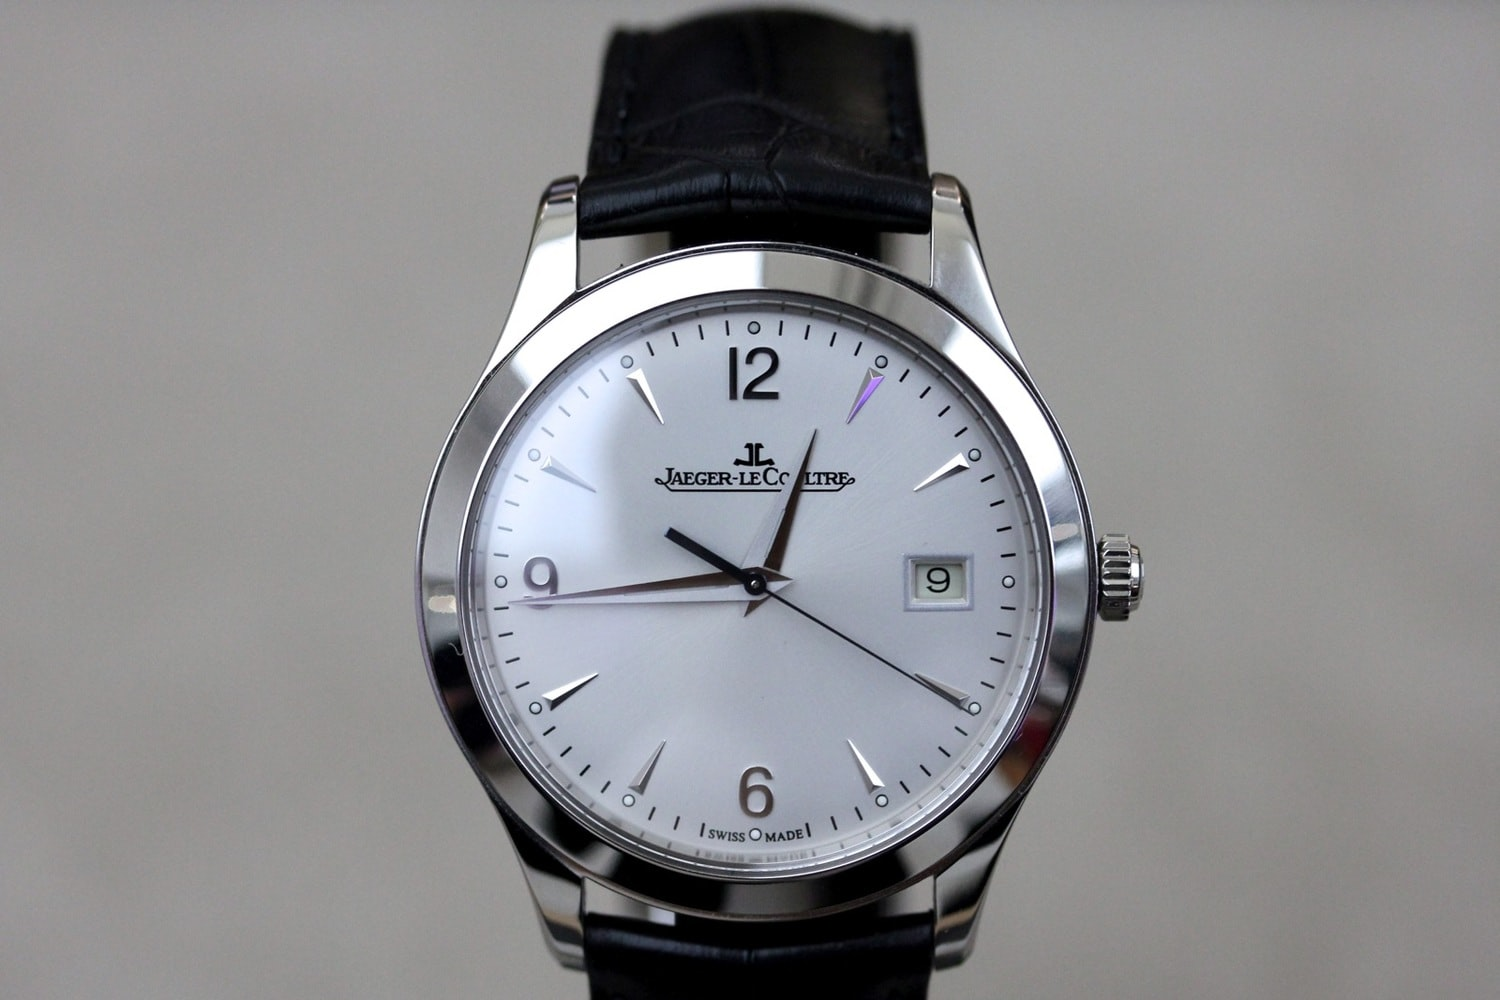 Hands On With The Jaeger Lecoultre Master Control Date